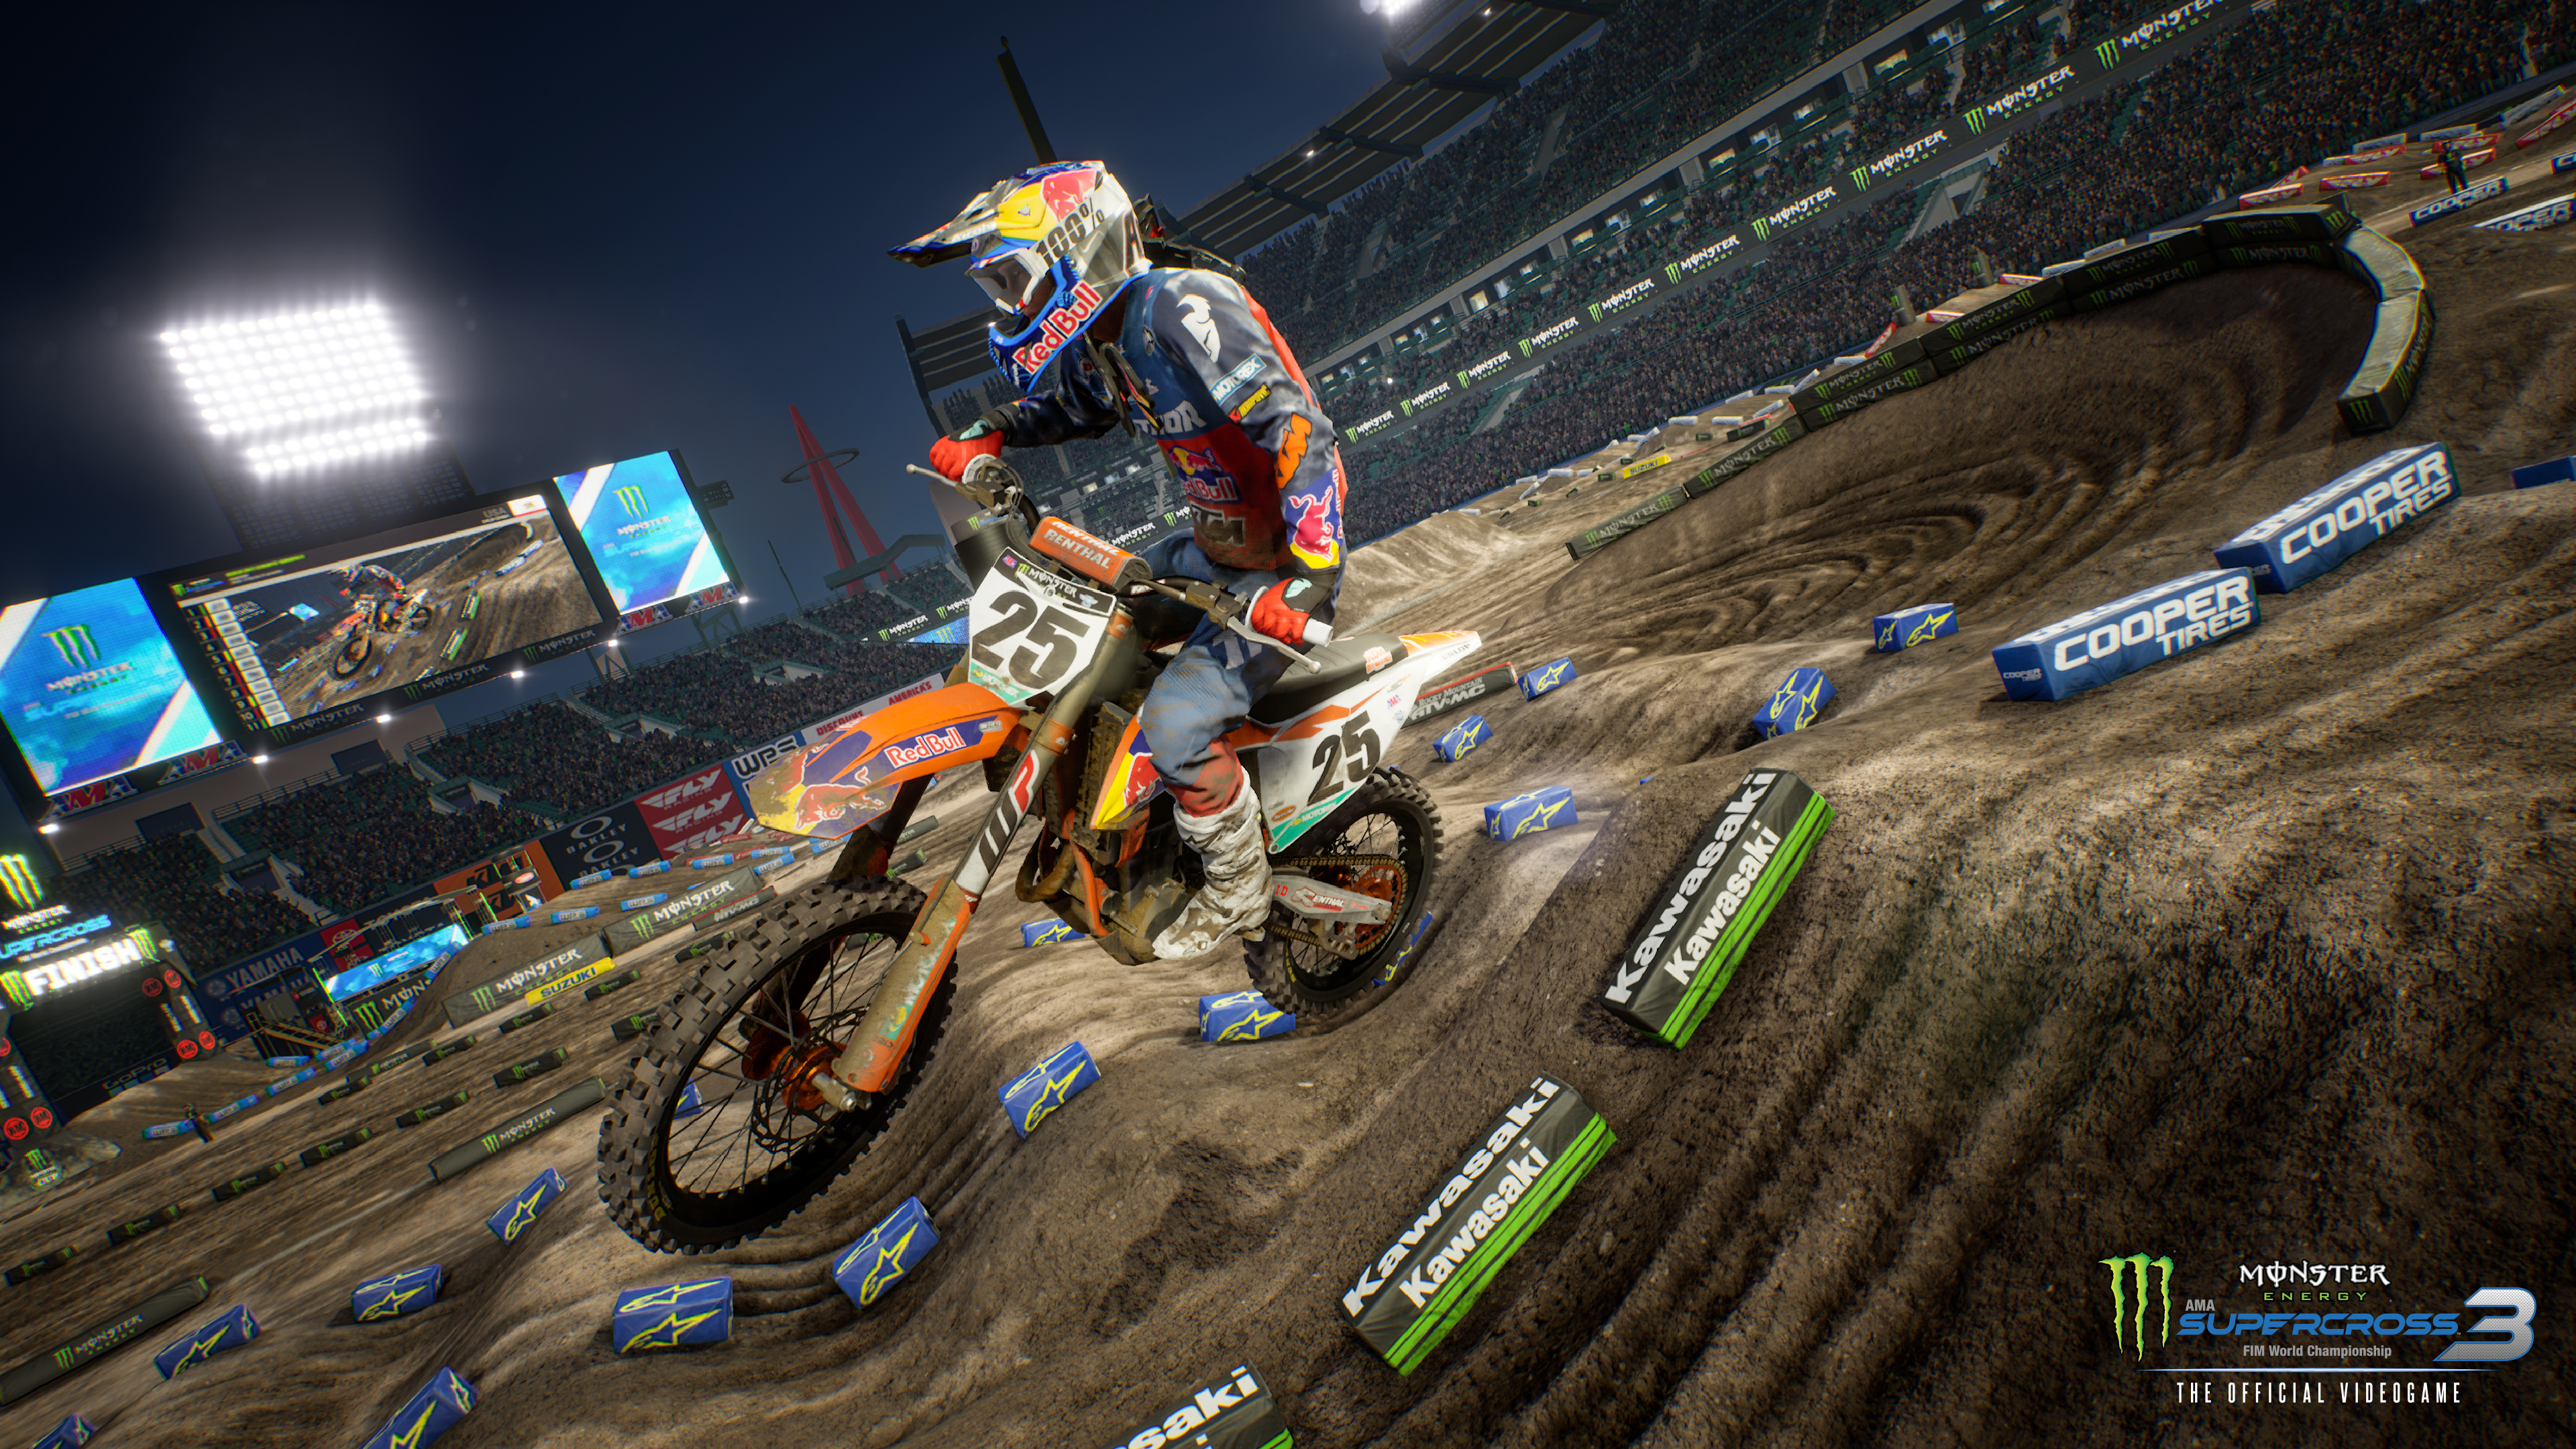 Review: Supercross 3 The Game with FMXer Samson Eaton